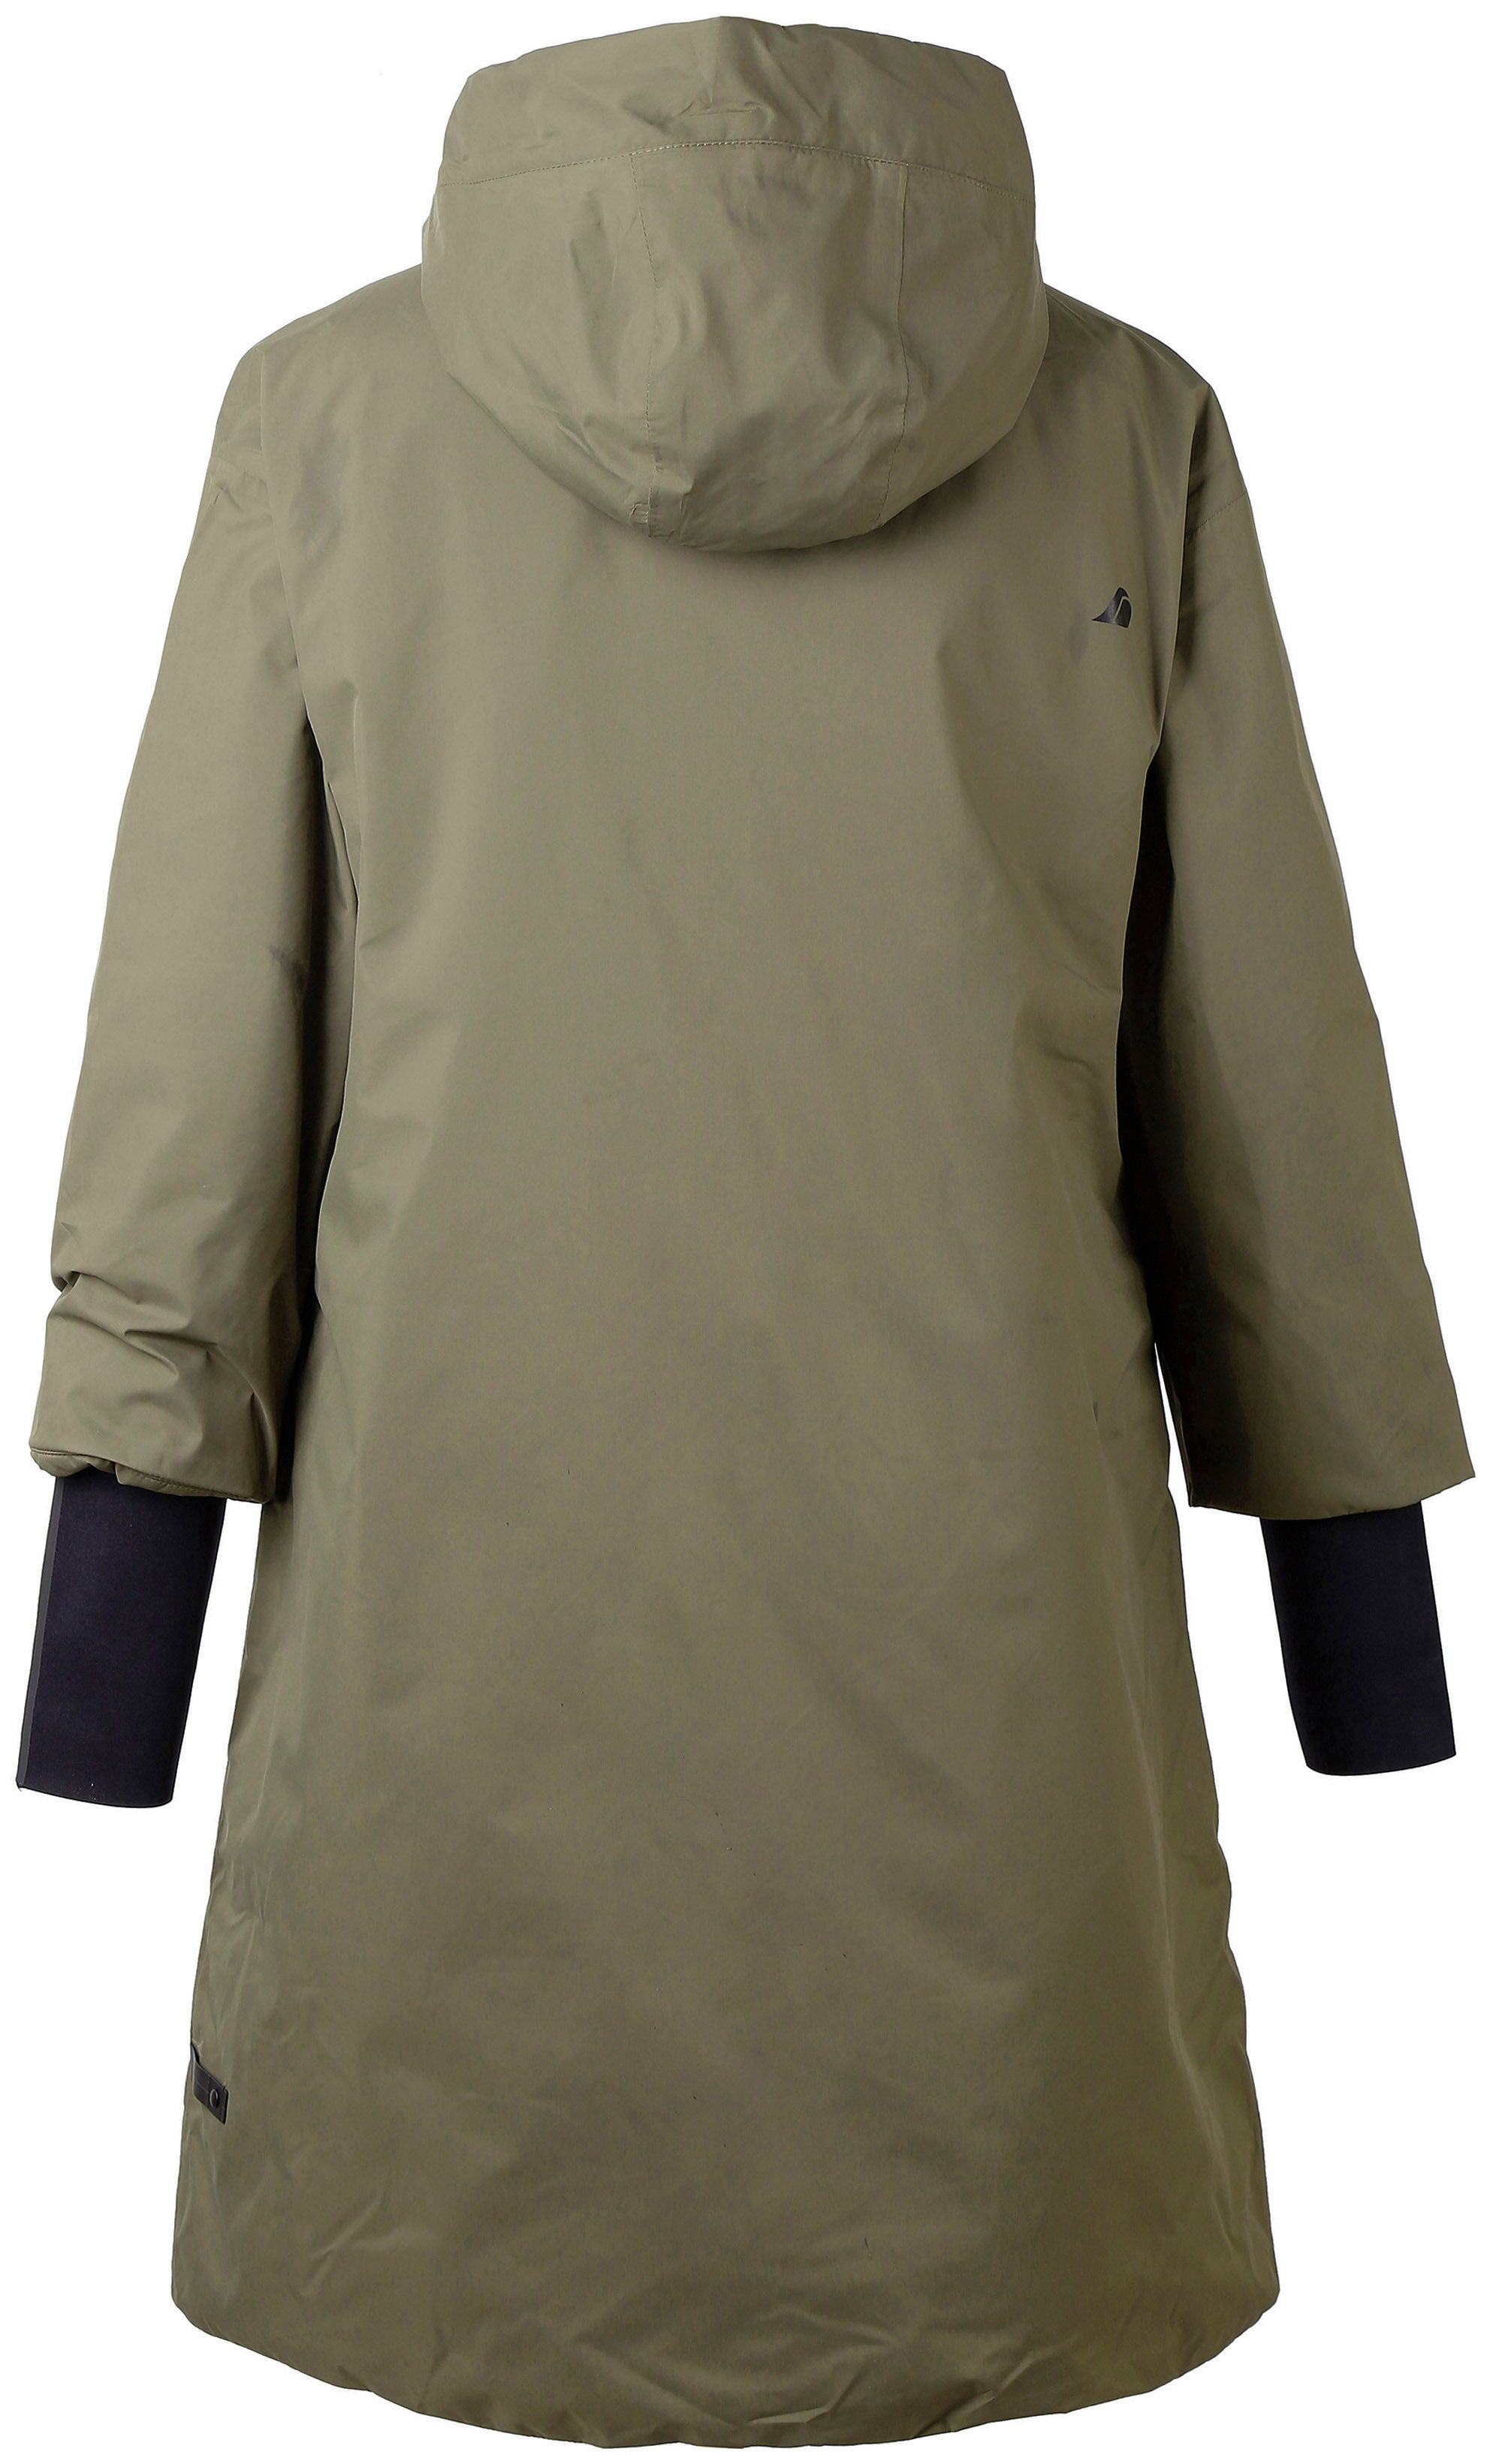 Details about DIDRIKSONS 1913 Womens StormSystem Waterproof Outdoor Hooded Trench Jacket sz 40